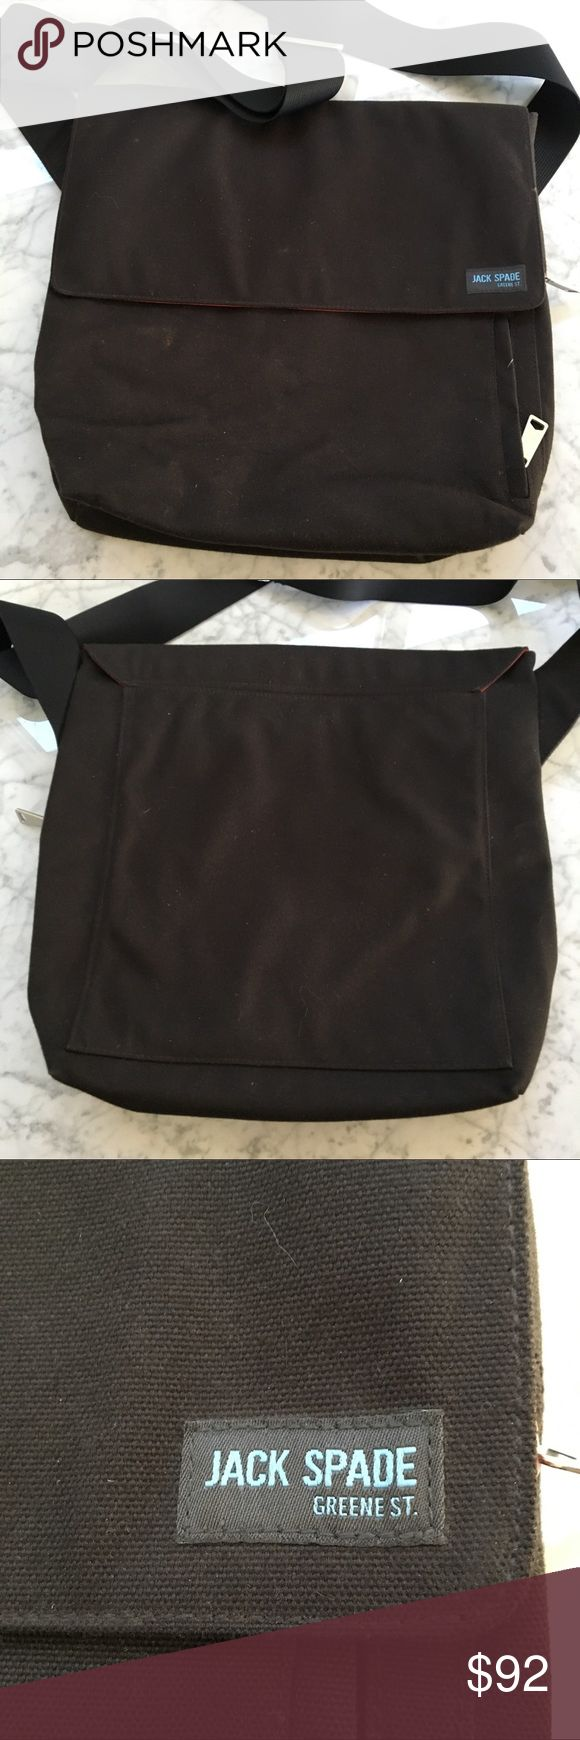 Jack Spade Messenger Bag Just a bit dusty but otherwise in great shape! Jack Spade Bags Messenger Bags